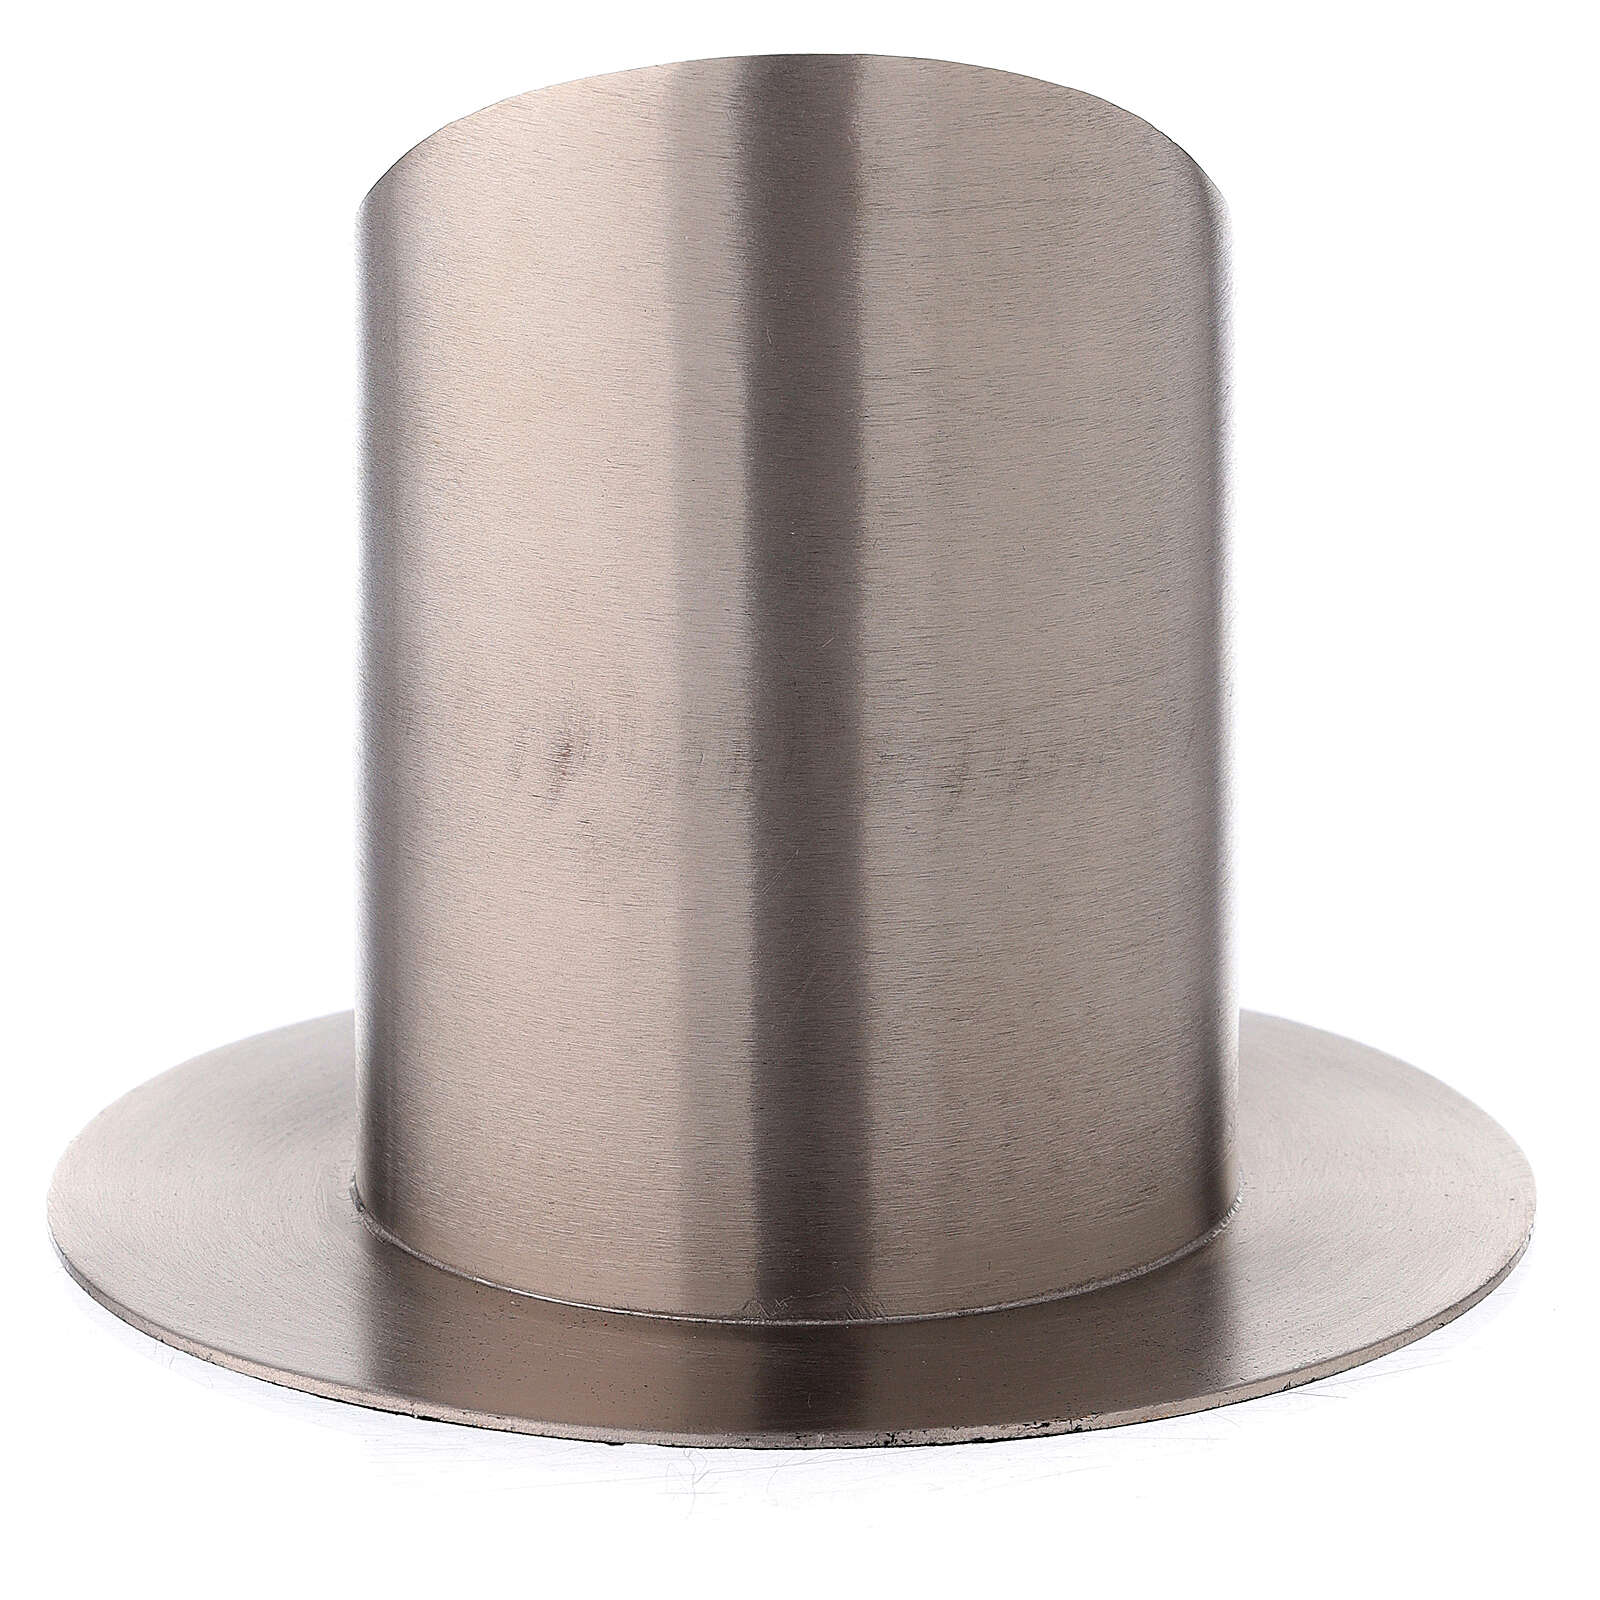 Nickel-plated brass candle holder satin finish mitered open socket 3 in 3